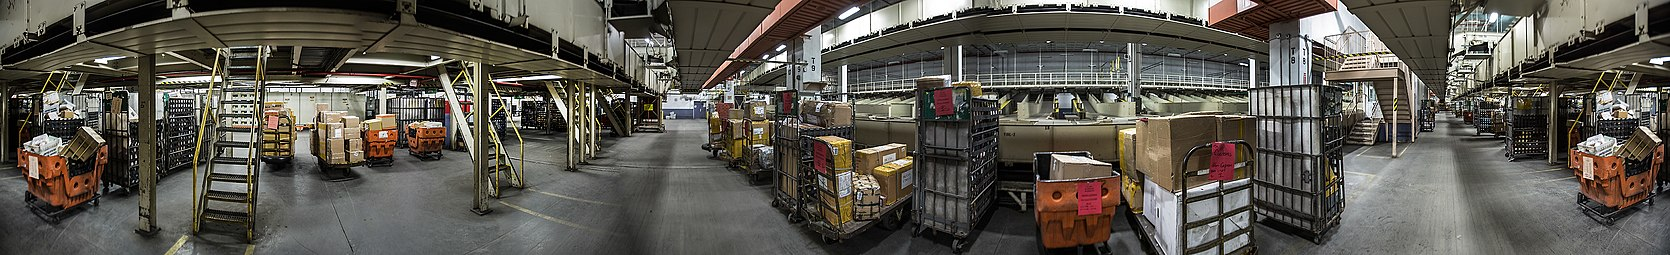 JFK International Mail Facility.jpg